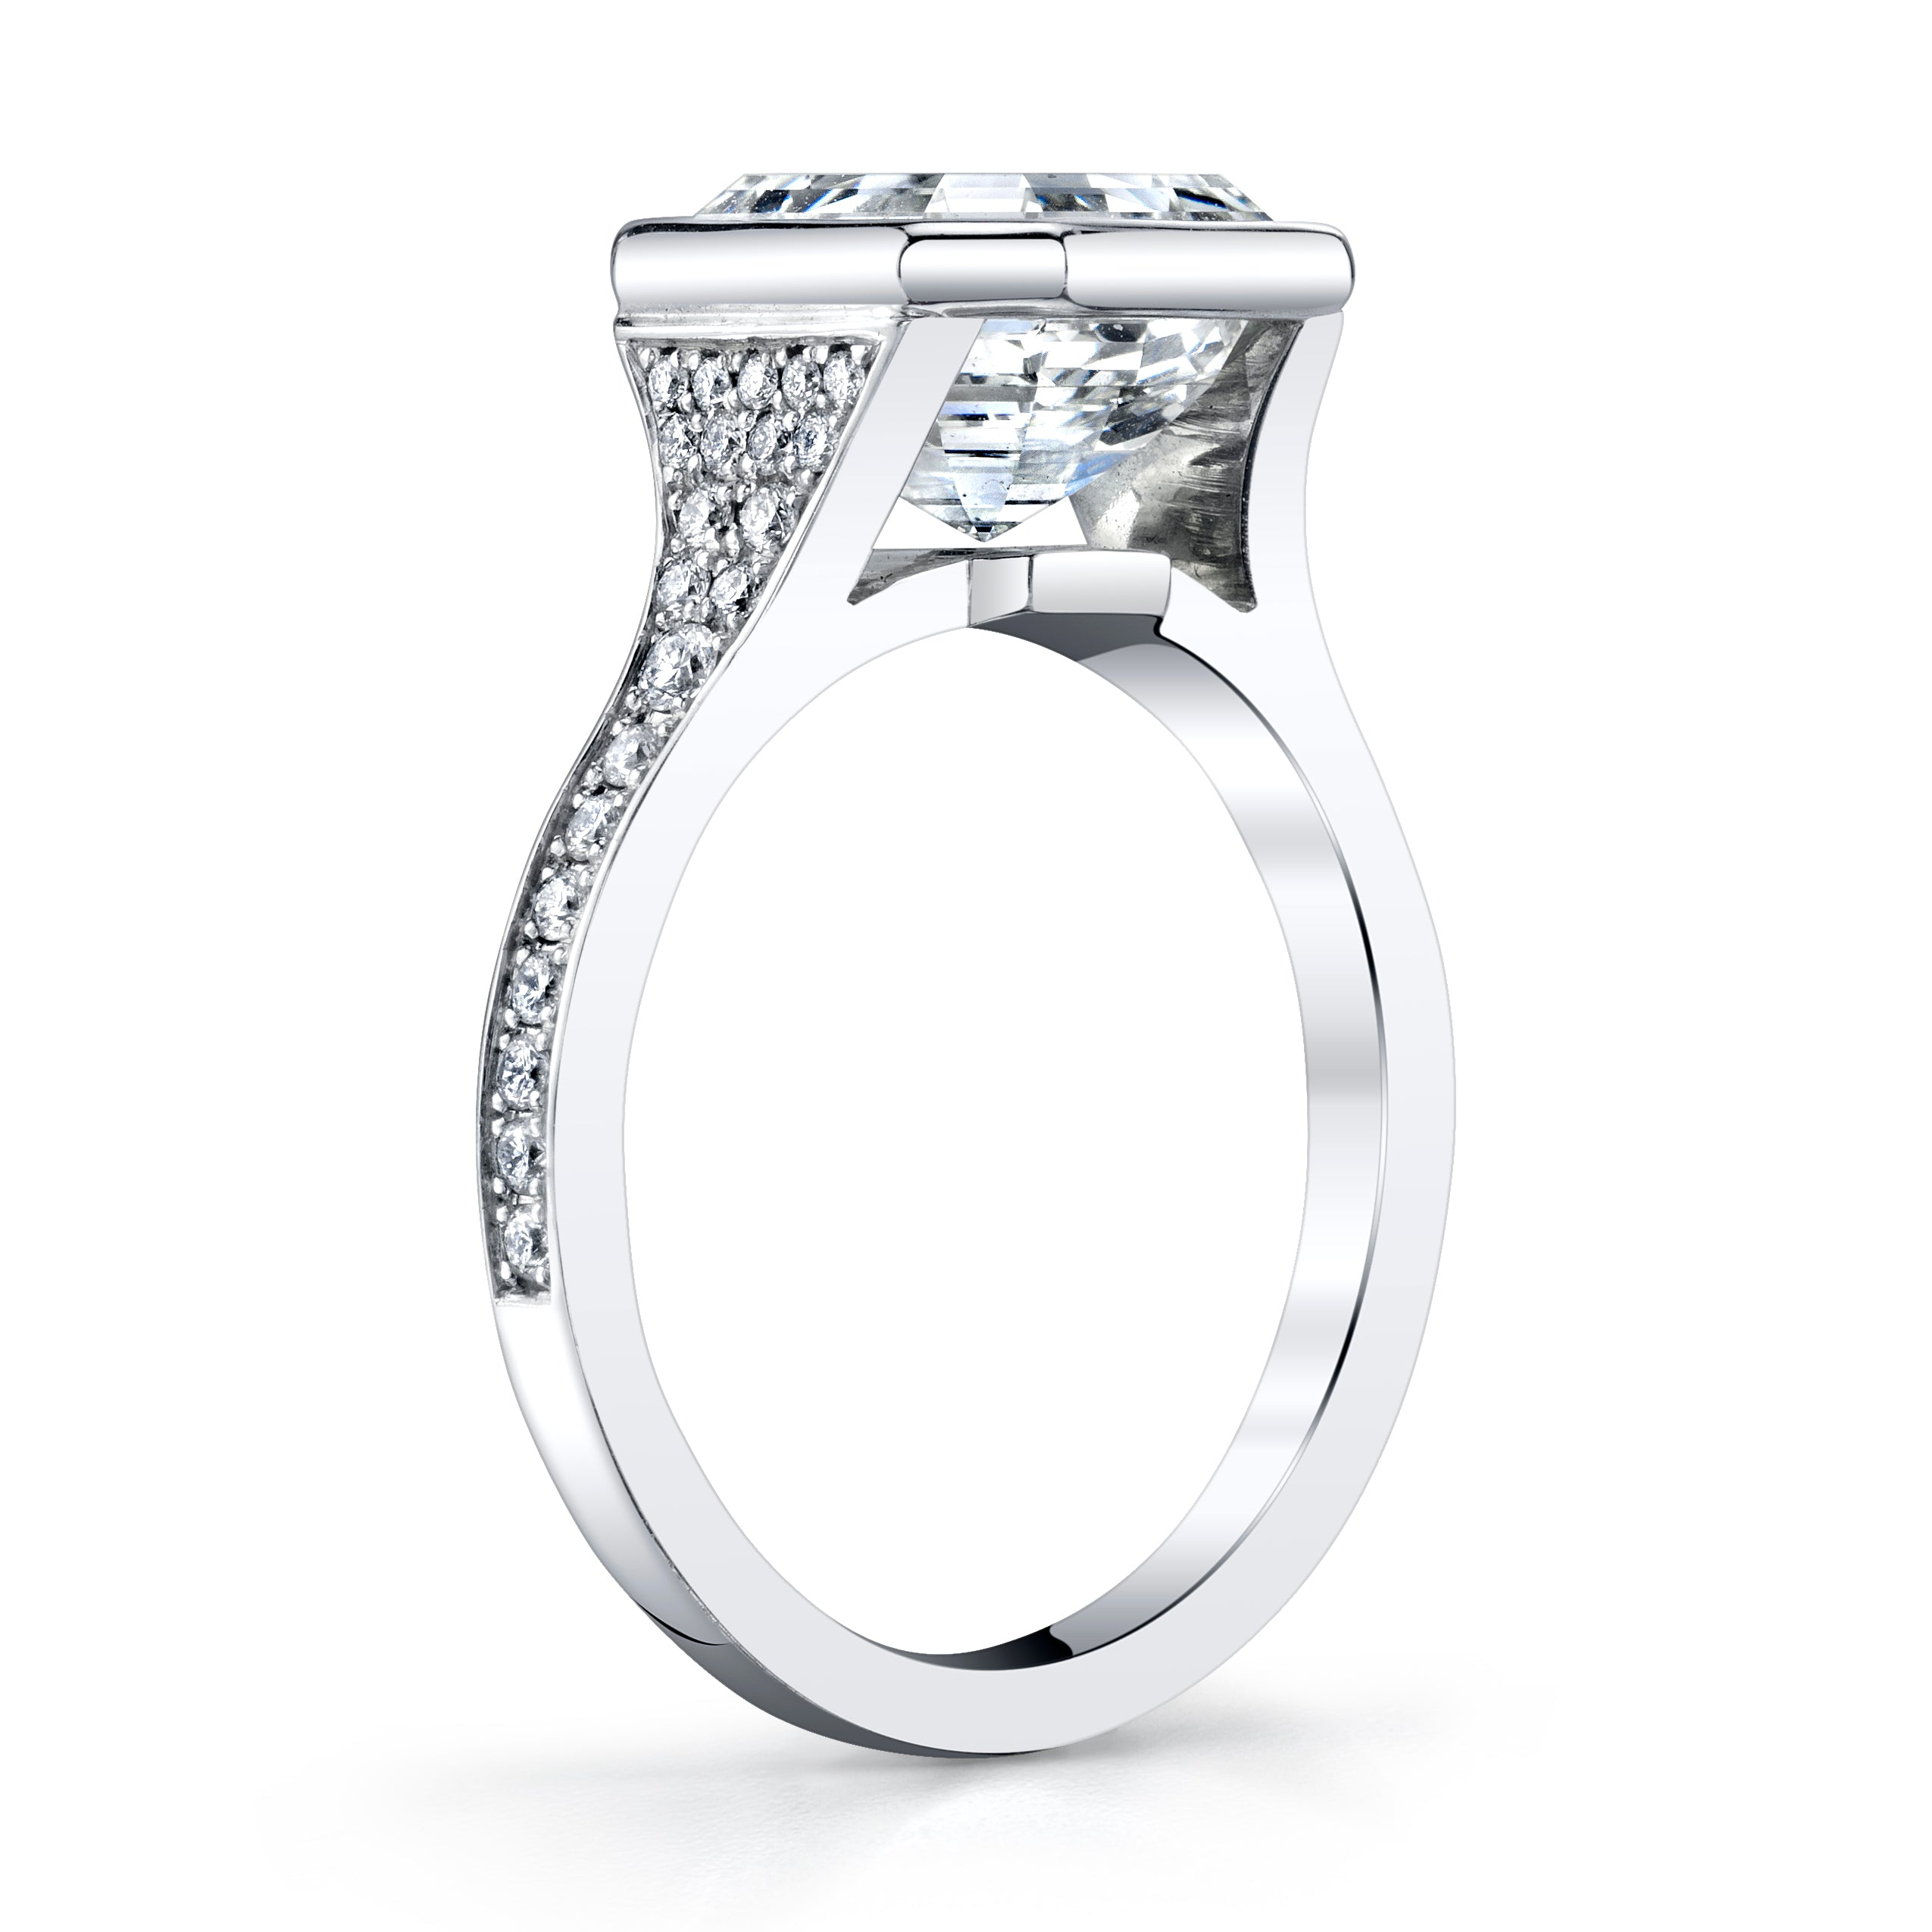 4.20 Asscher Cut Diamond Engagement Ring